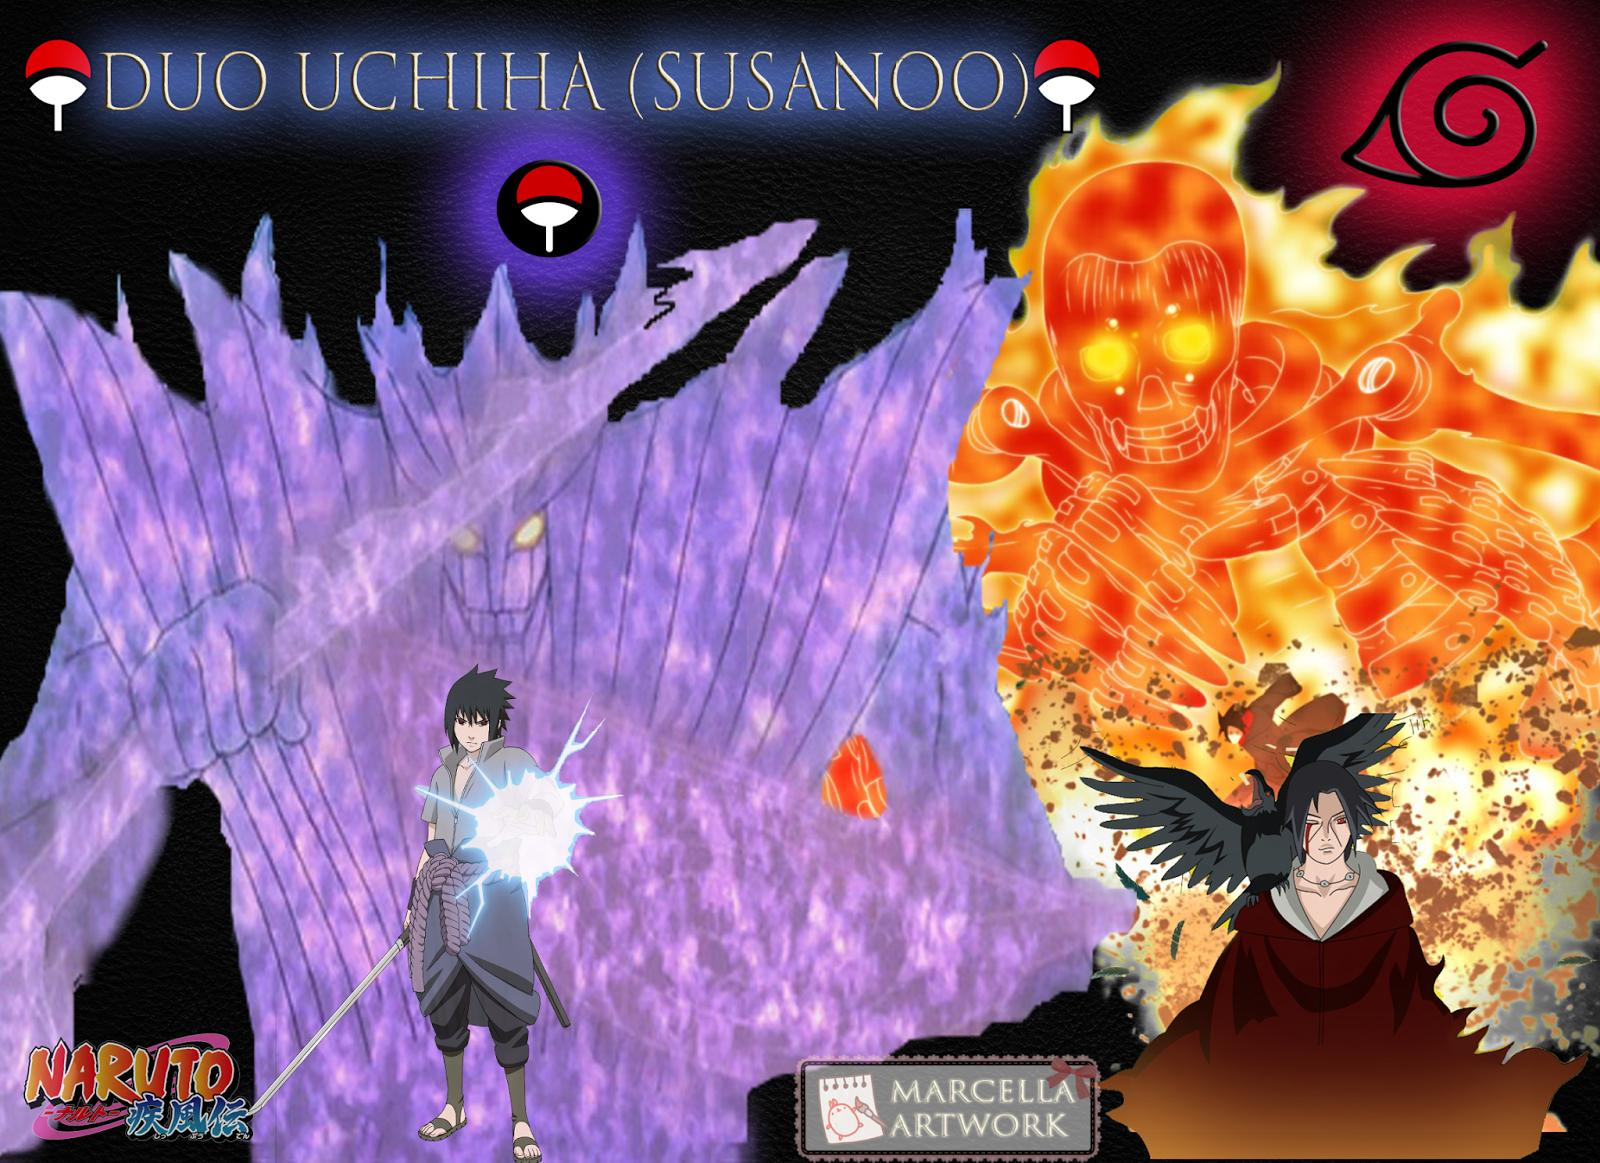 Free Download Wallpapers For Itachi And Sasuke Susanoo